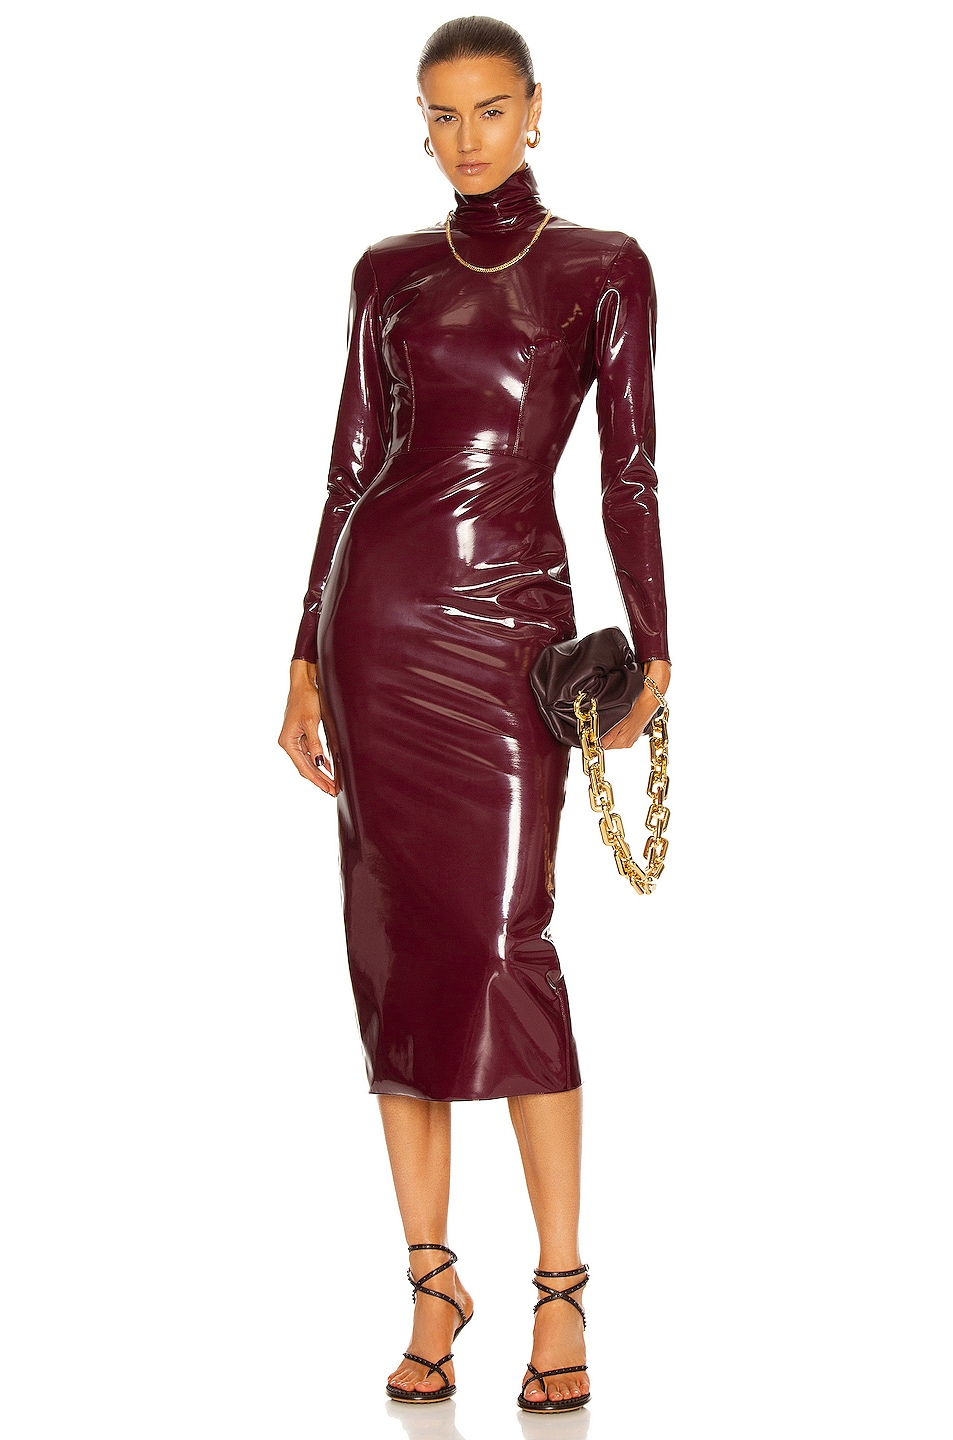 Image 1 of Alex Perry Adams Dress in Cherry